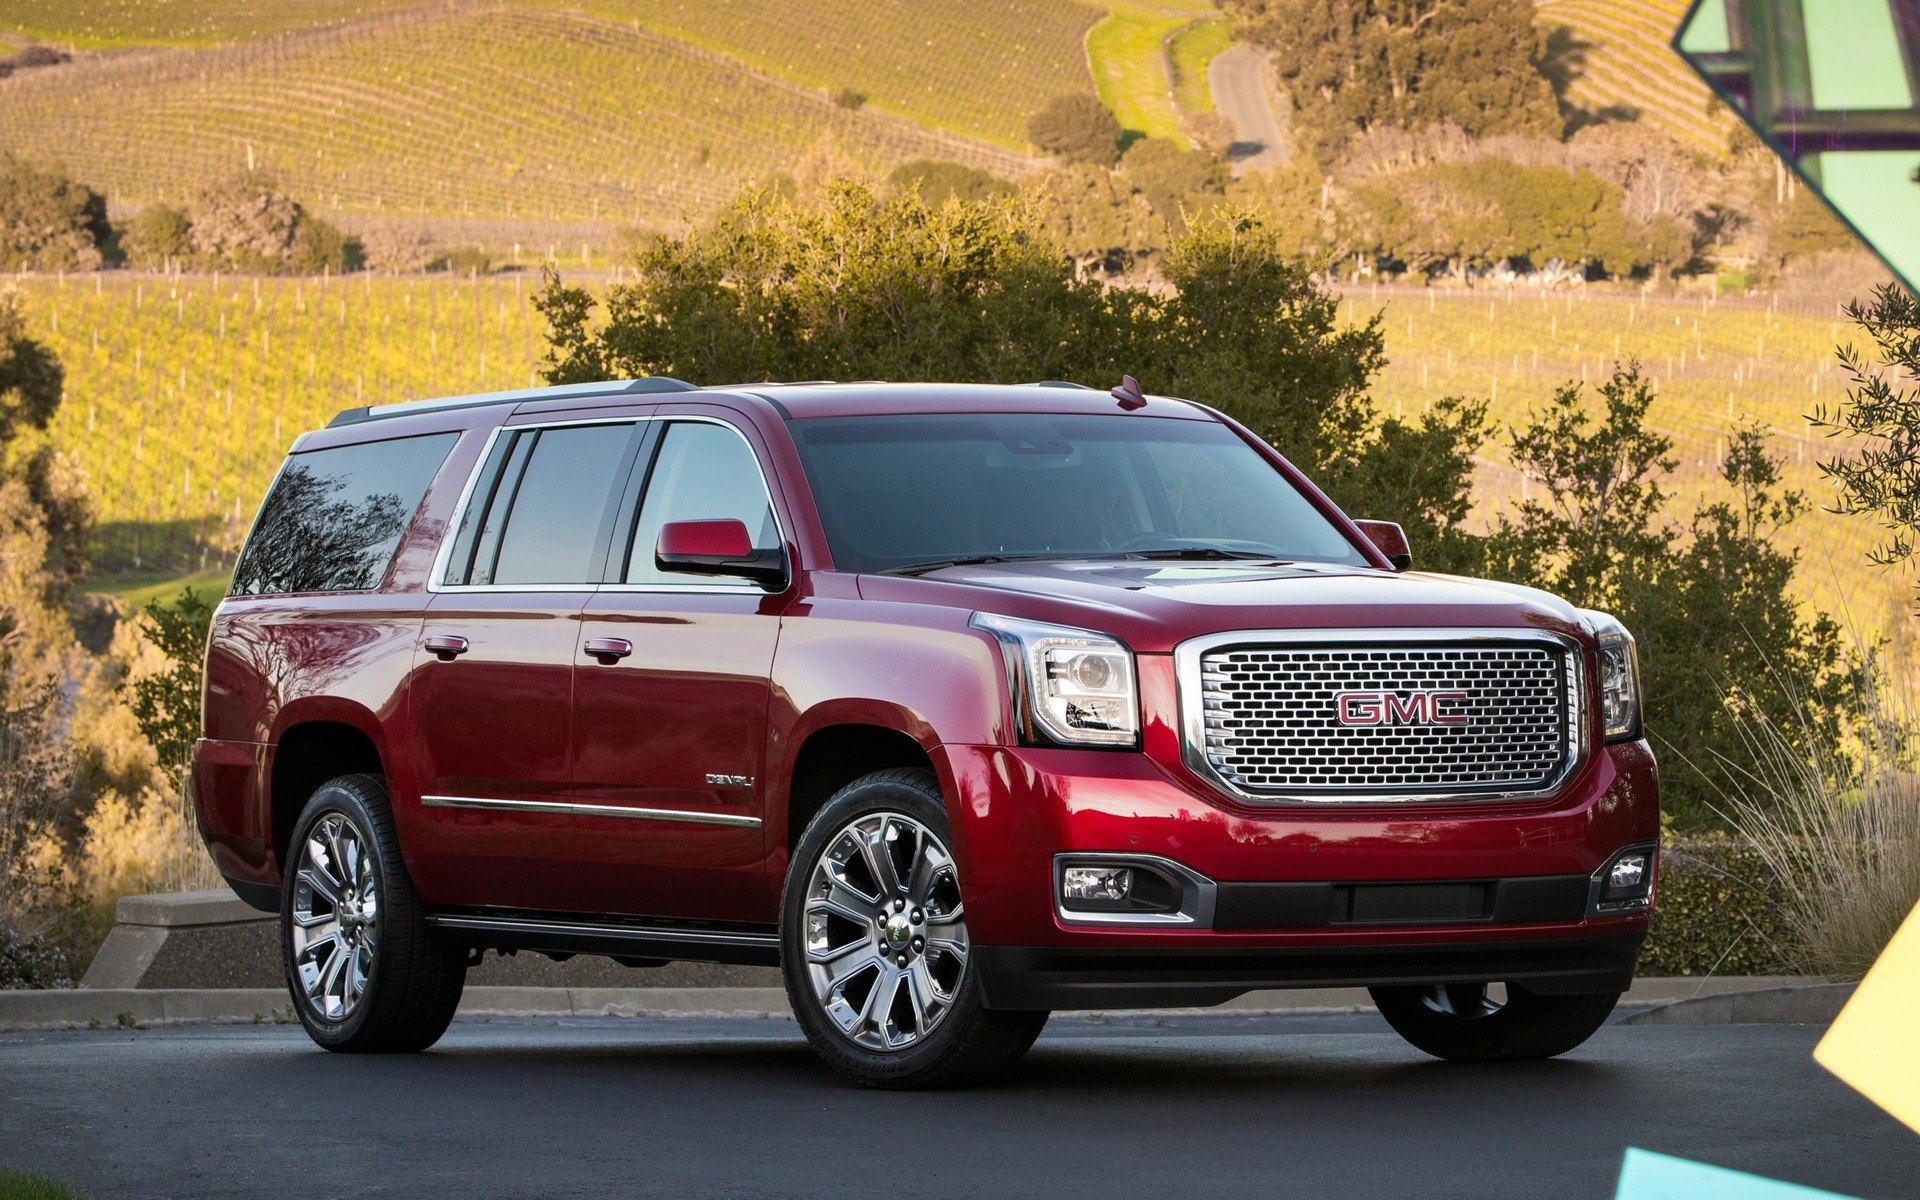 2018 Gmc Yukon Sle Specifications The Car Guide